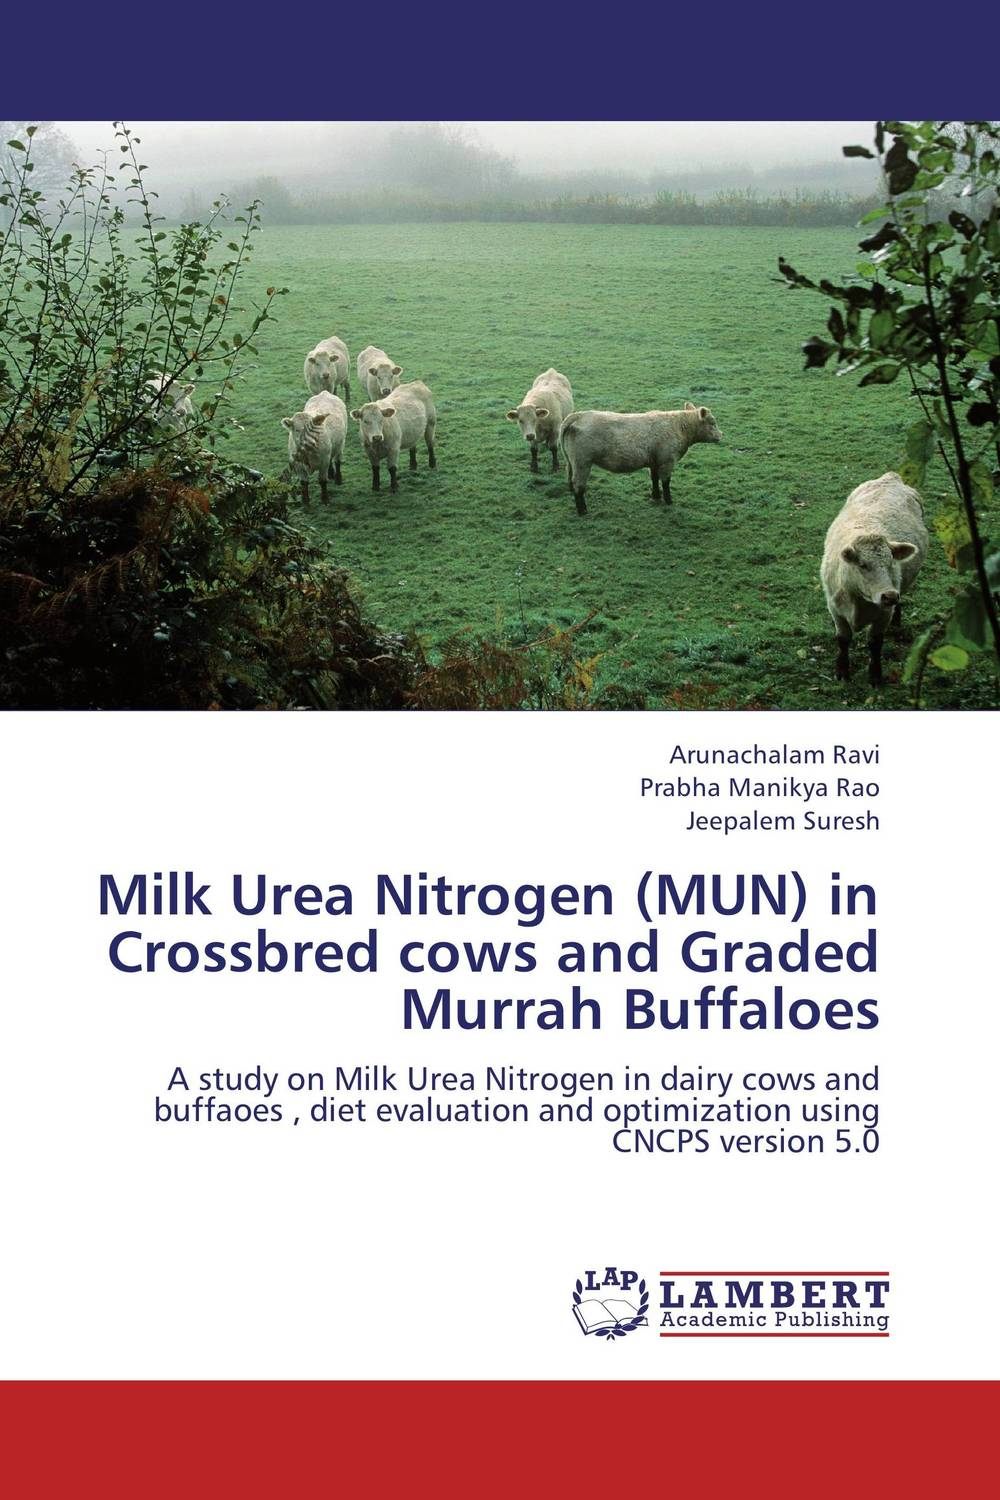 Milk Urea Nitrogen (MUN) in Crossbred cows and Graded Murrah Buffaloes transition period in cows nutrition metabolism and metabolic disease